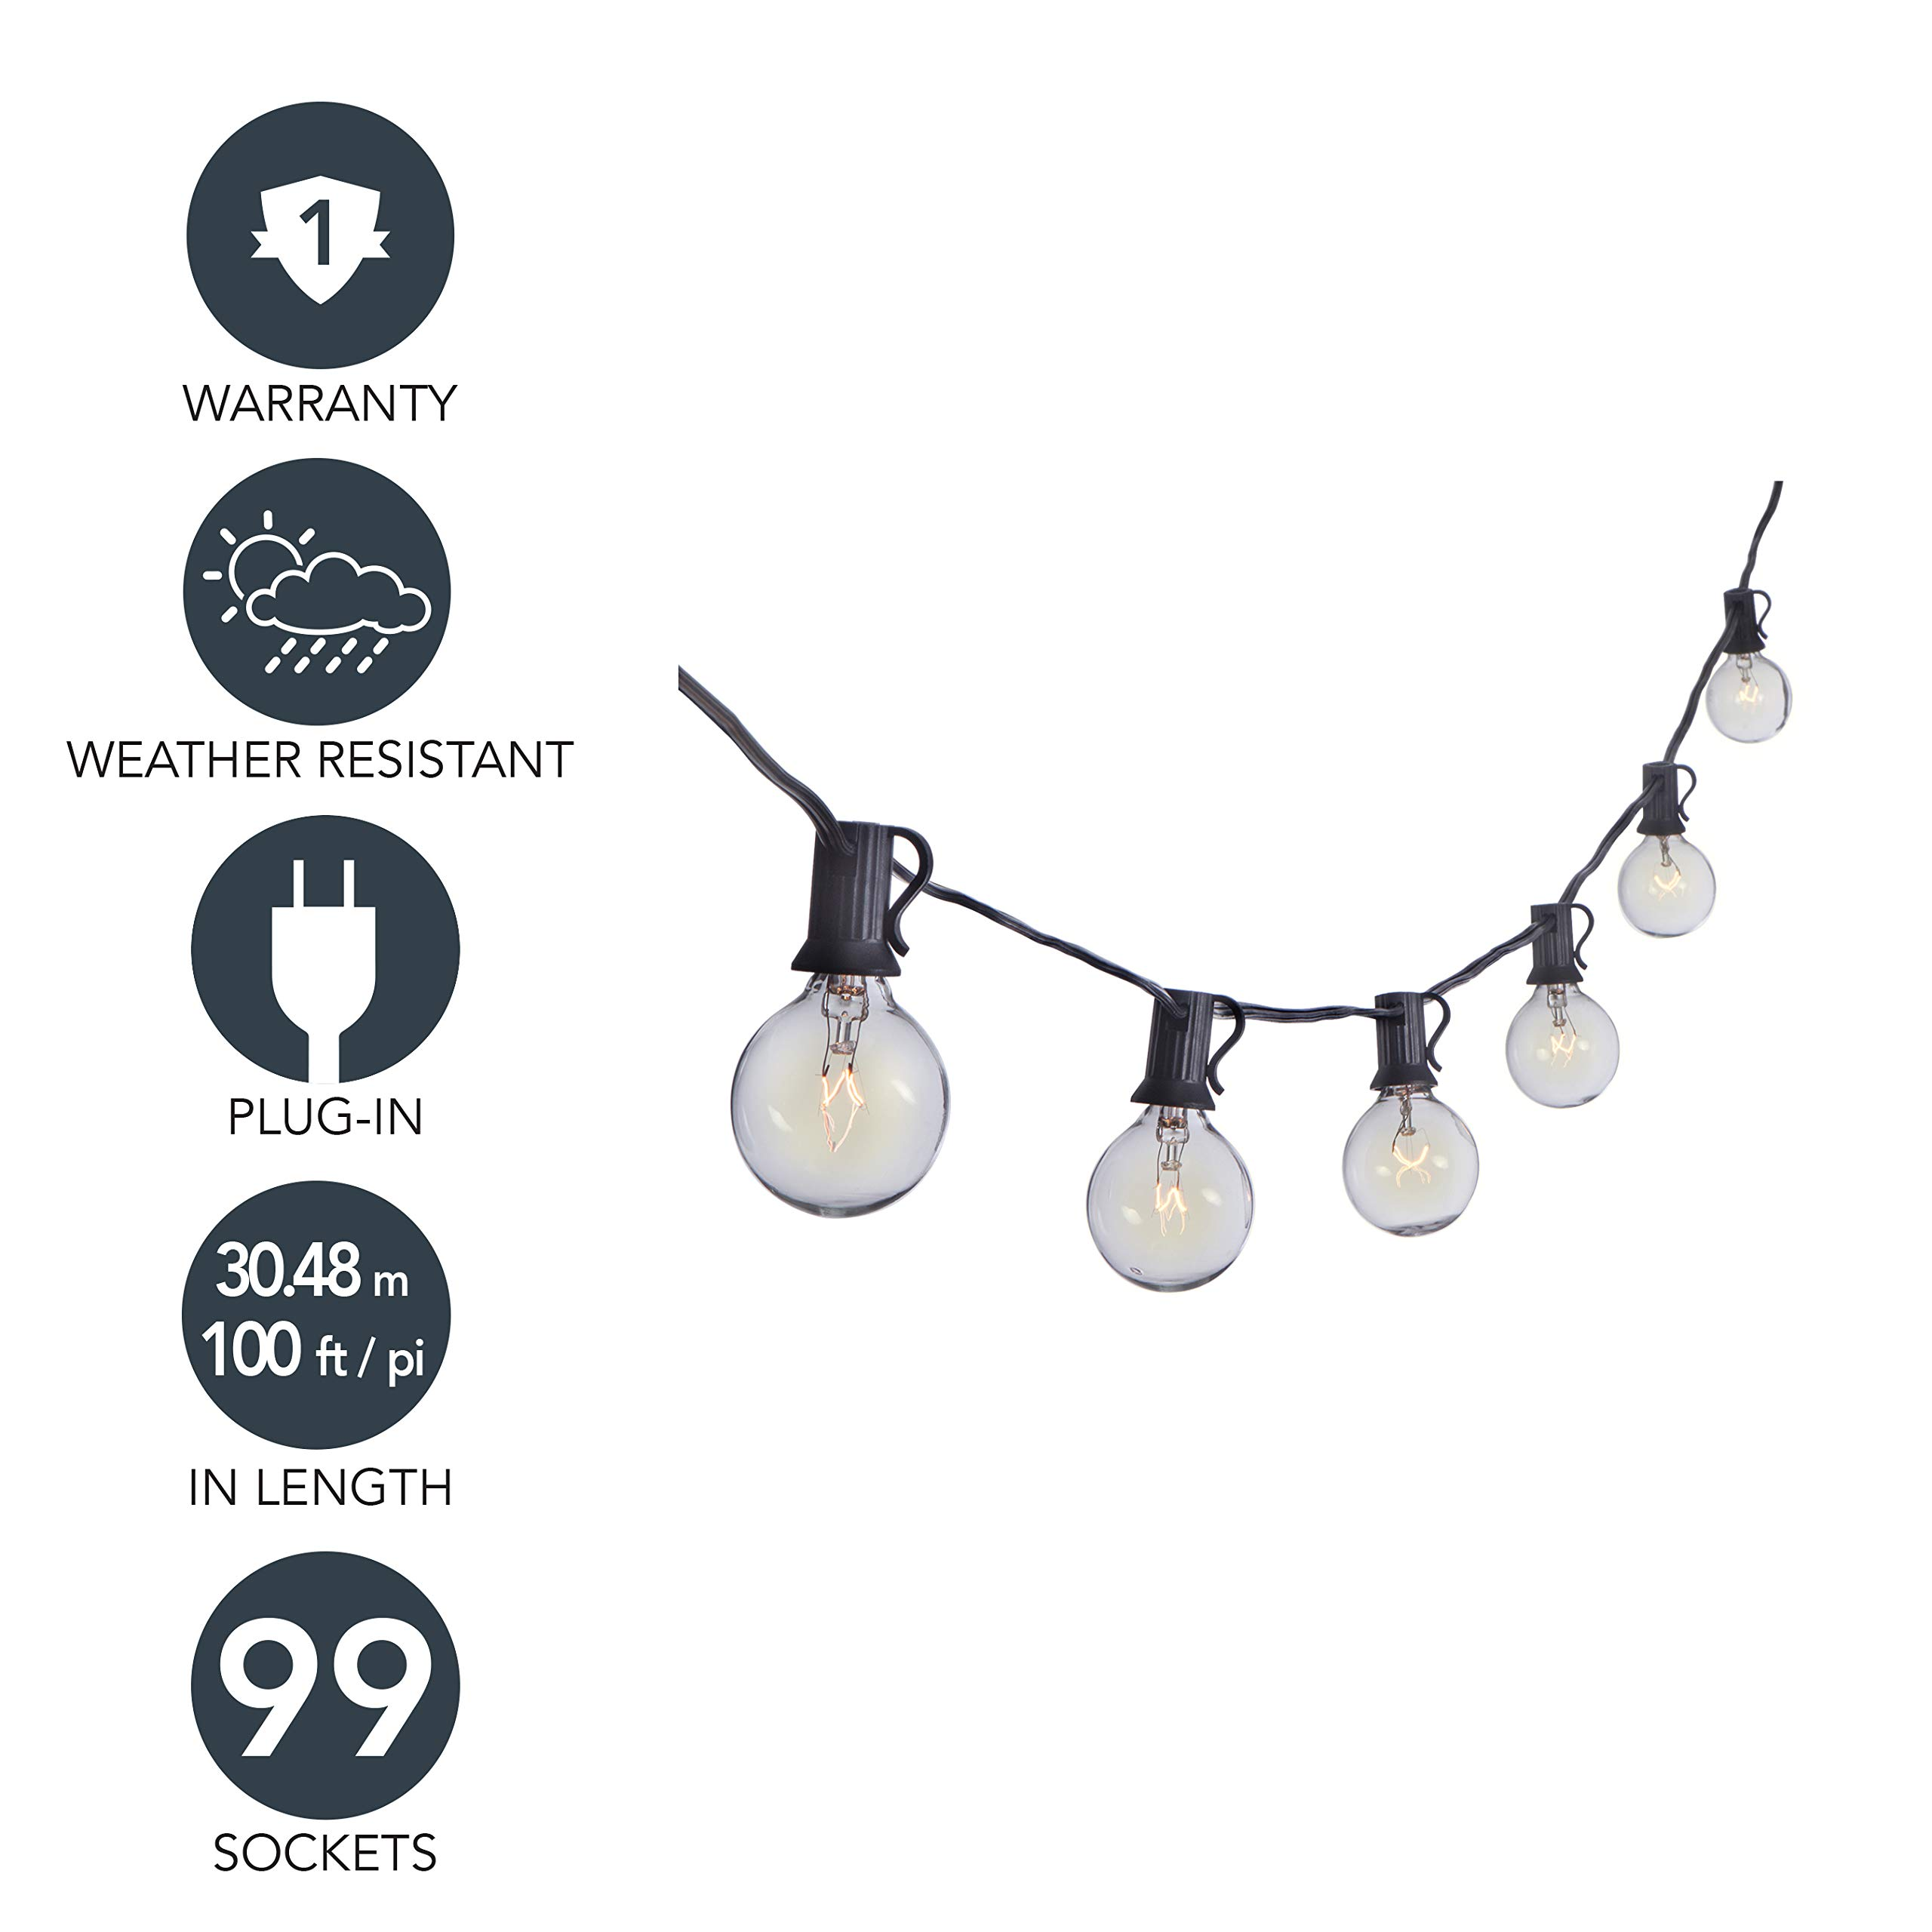 Sterno Home 100-Ft Clear Globe Outdoor String Lights G40 Bulbs on Black Cord – For Backyard, Weddings, Patio, Porch, Umbrellas, Tents, and more.